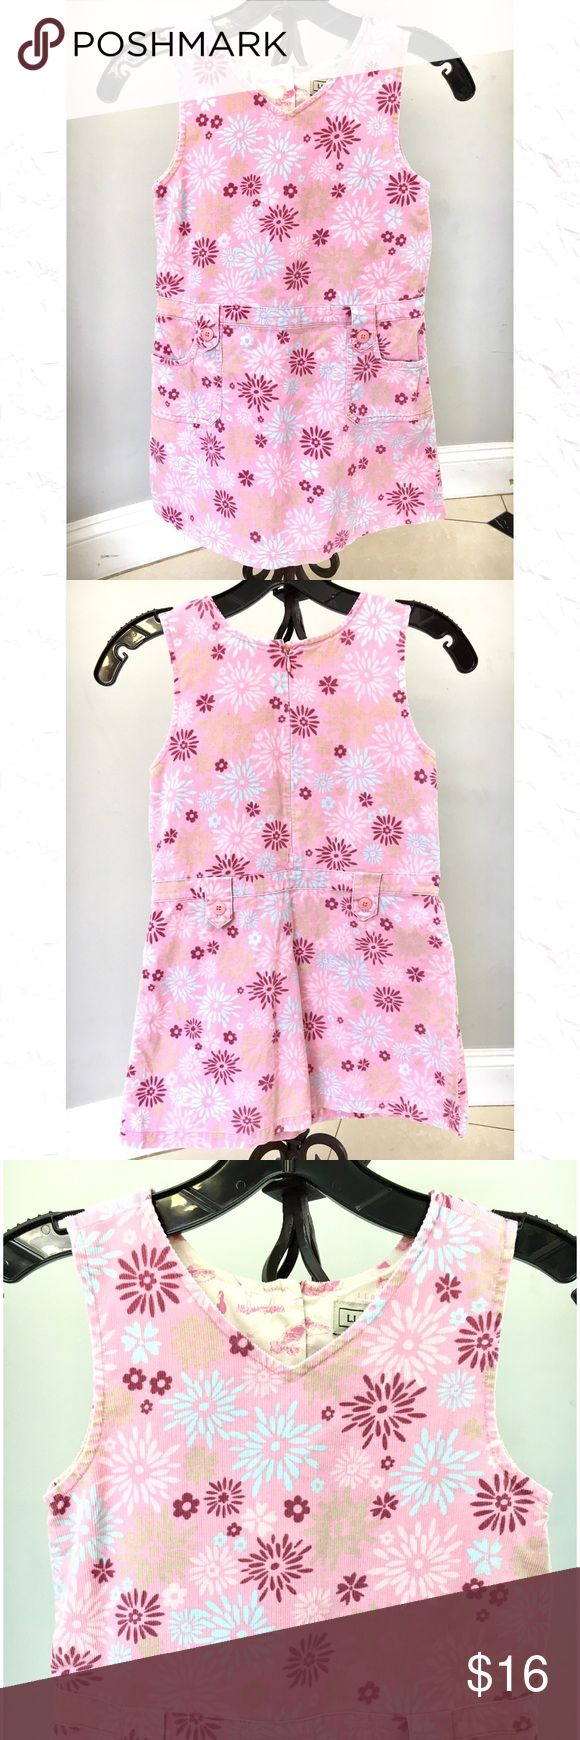 "🎈L.L Bean Girls Pink Flower Print Dress 6X - 7 Spring or Summer Girl L.L. Bean Flower Print Dress Size 6X-7.  Front pockets.  V- neck.  100% Cotton.  Corduroy type fabric.  Back Zipper.  25"" from Shoulder to Hem.  13"" across armpit to armpit.   13 1/2"" across at the waist. L.L. Bean Dresses Casual"